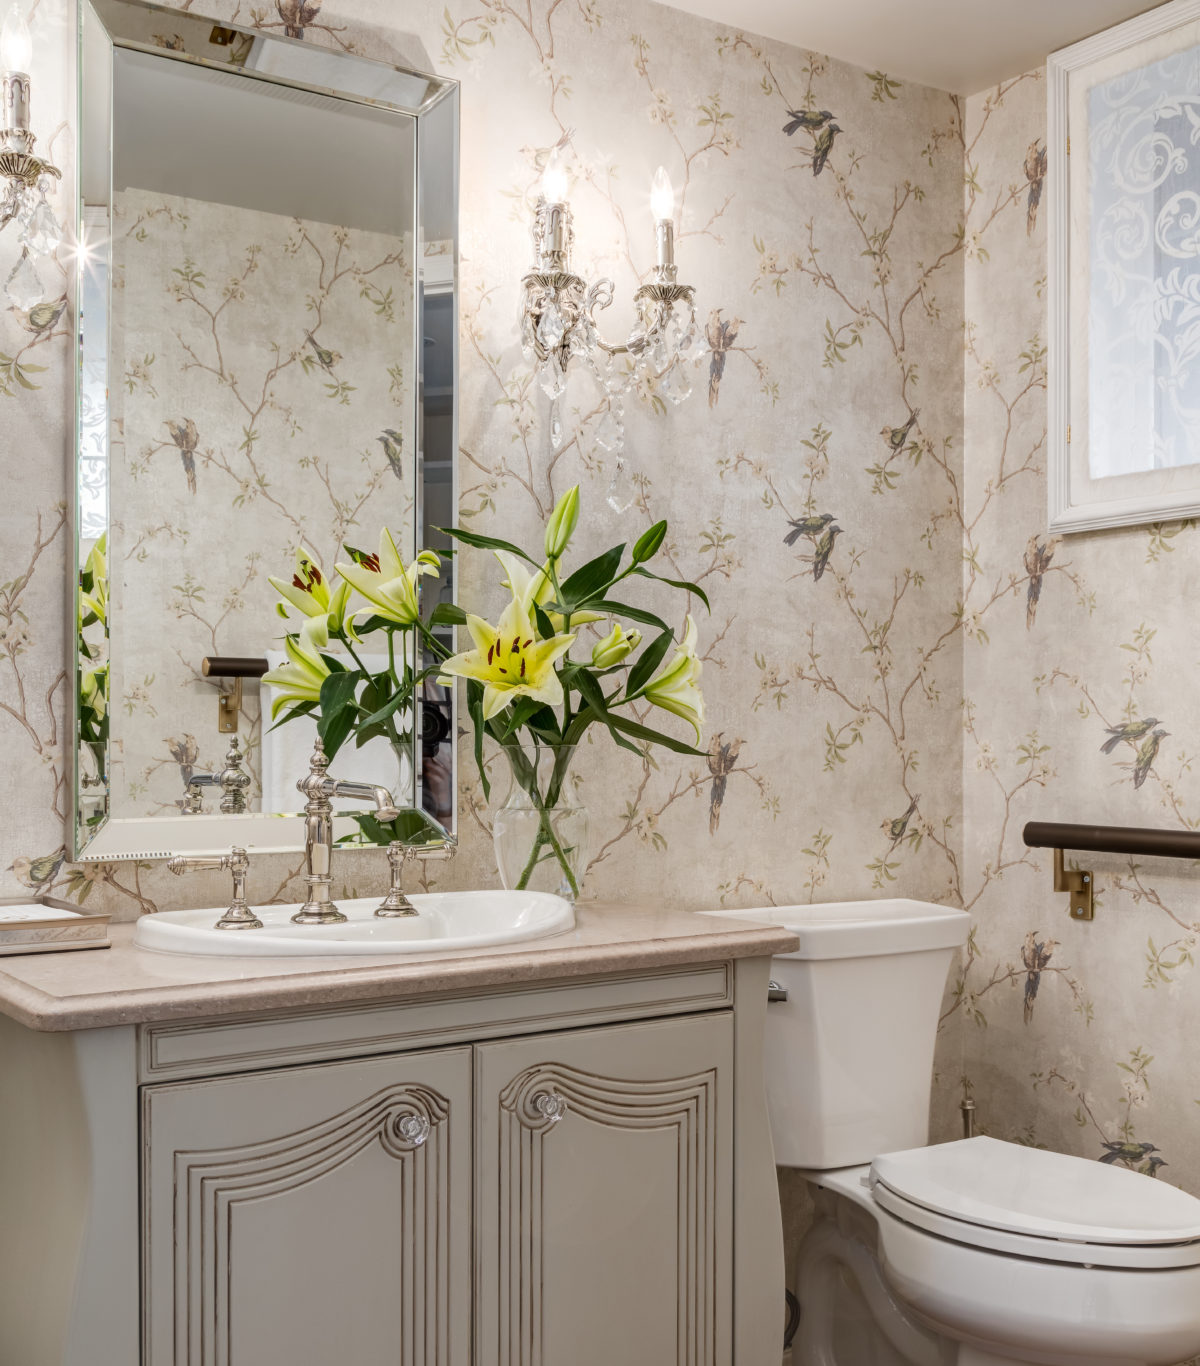 Beautiful designer wallpaper with songbirds in an elegant power room with a restored chest vanity.